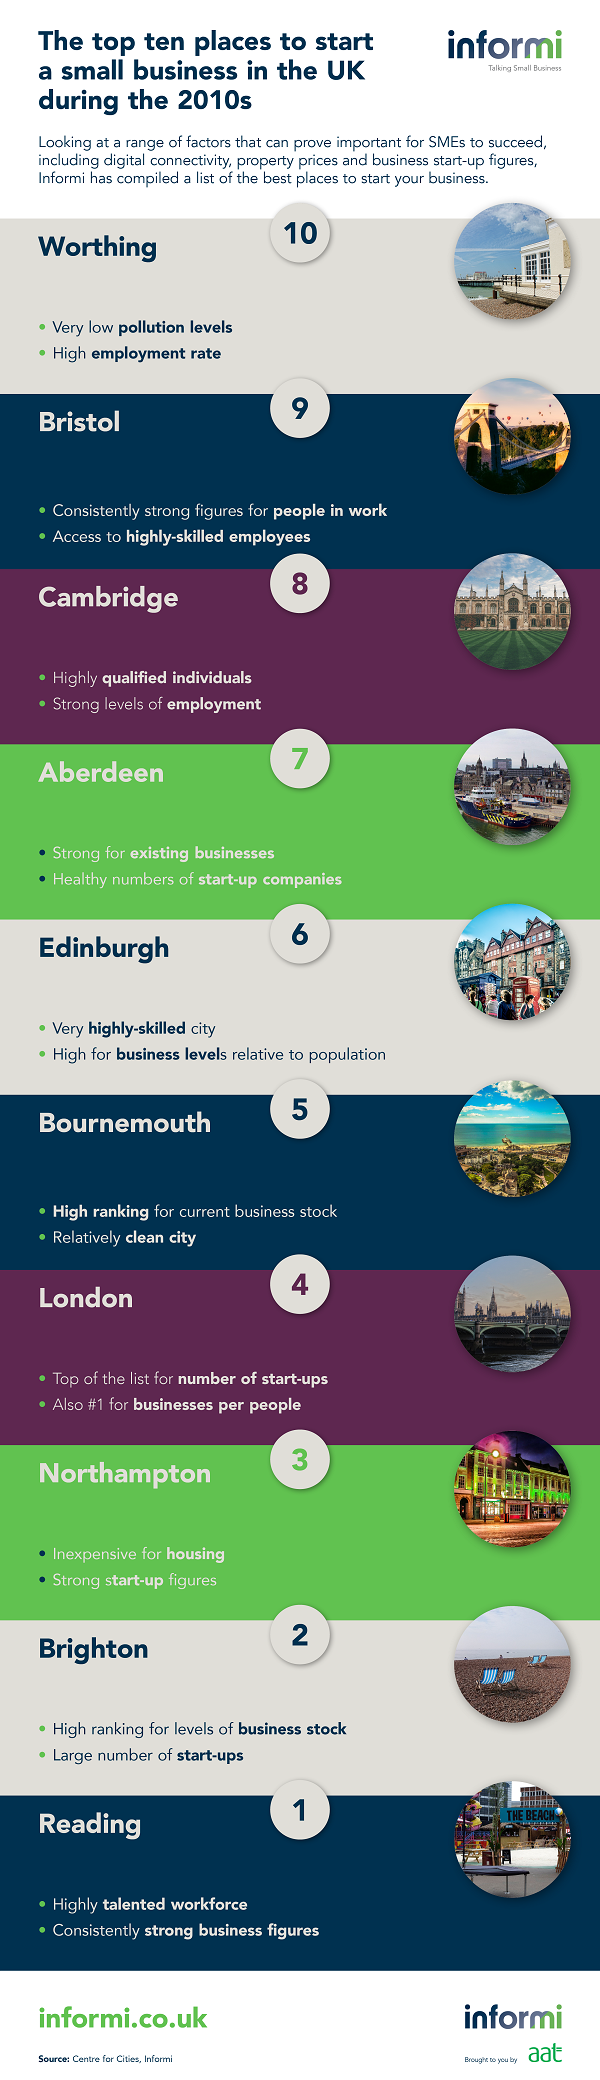 Best places to start a business 2010s_infographic